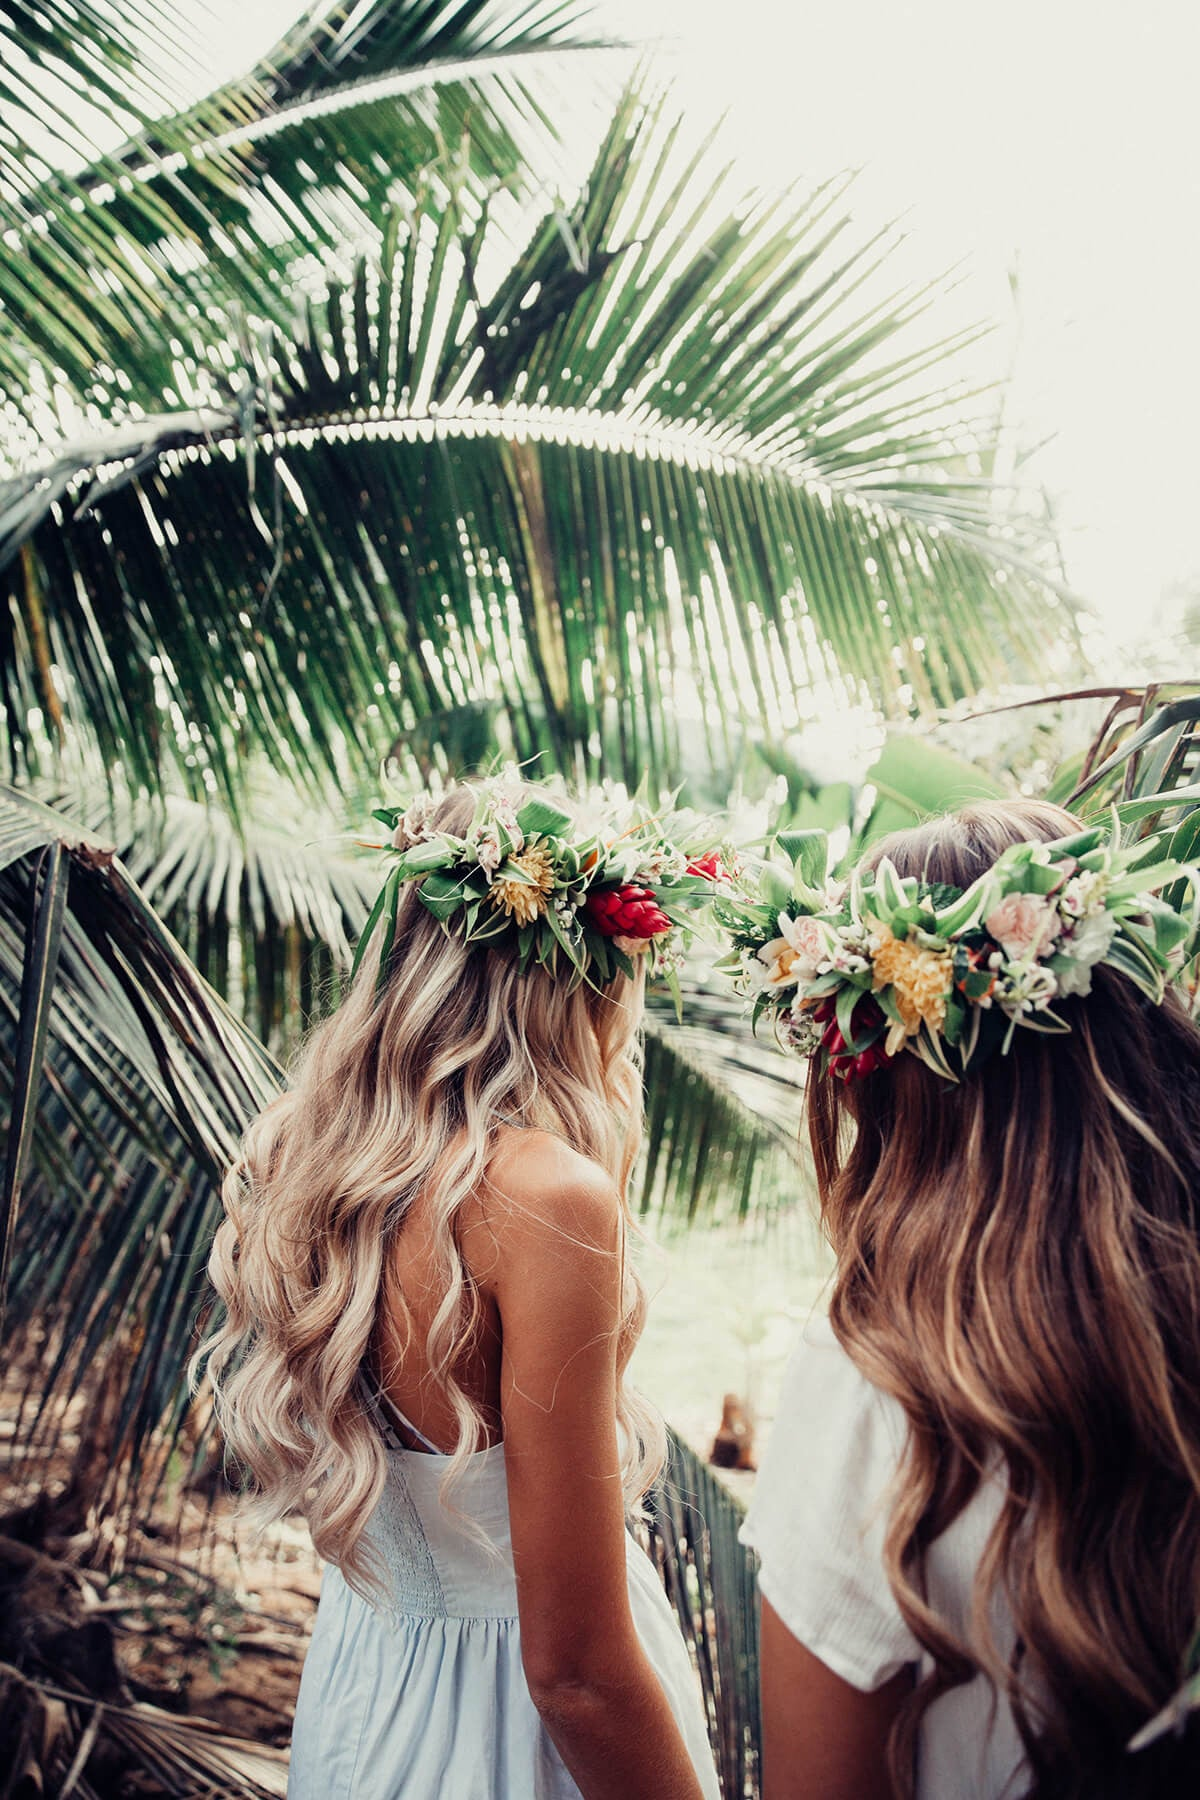 Barefoot Blonde Hair Extensions in Palm Trees